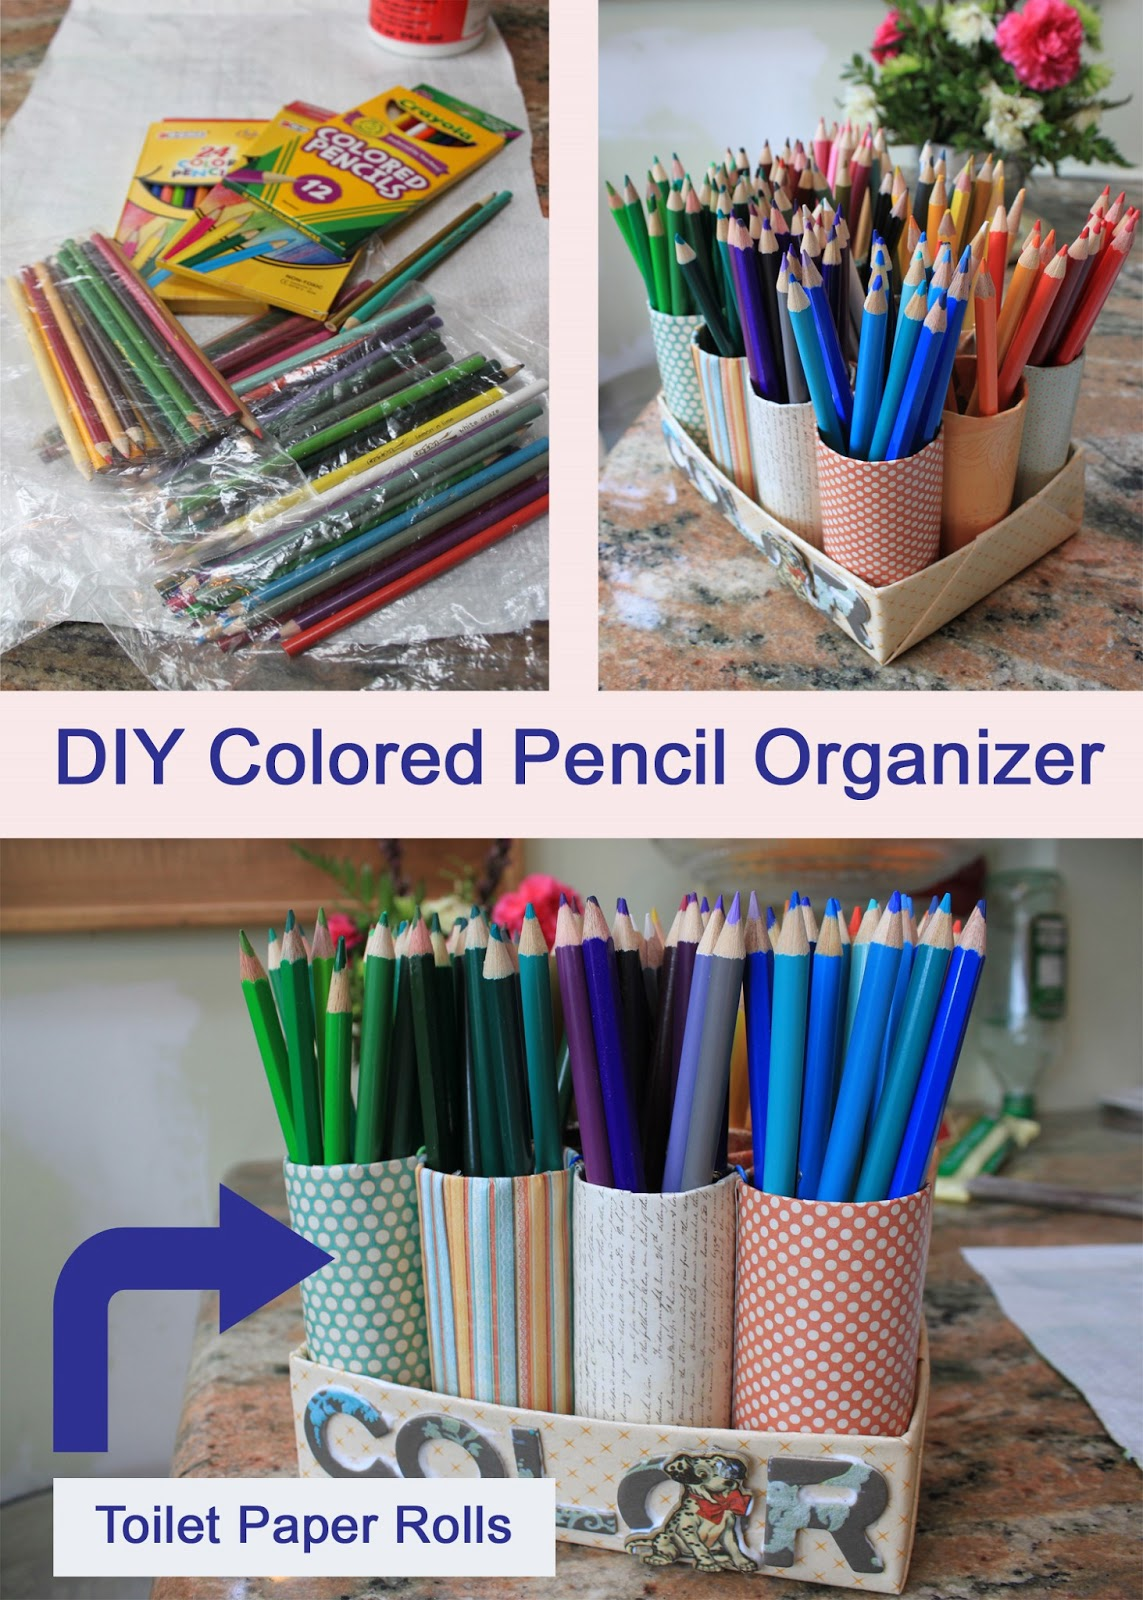 My great challenge diy colored pencil organizer for Diy colored paper